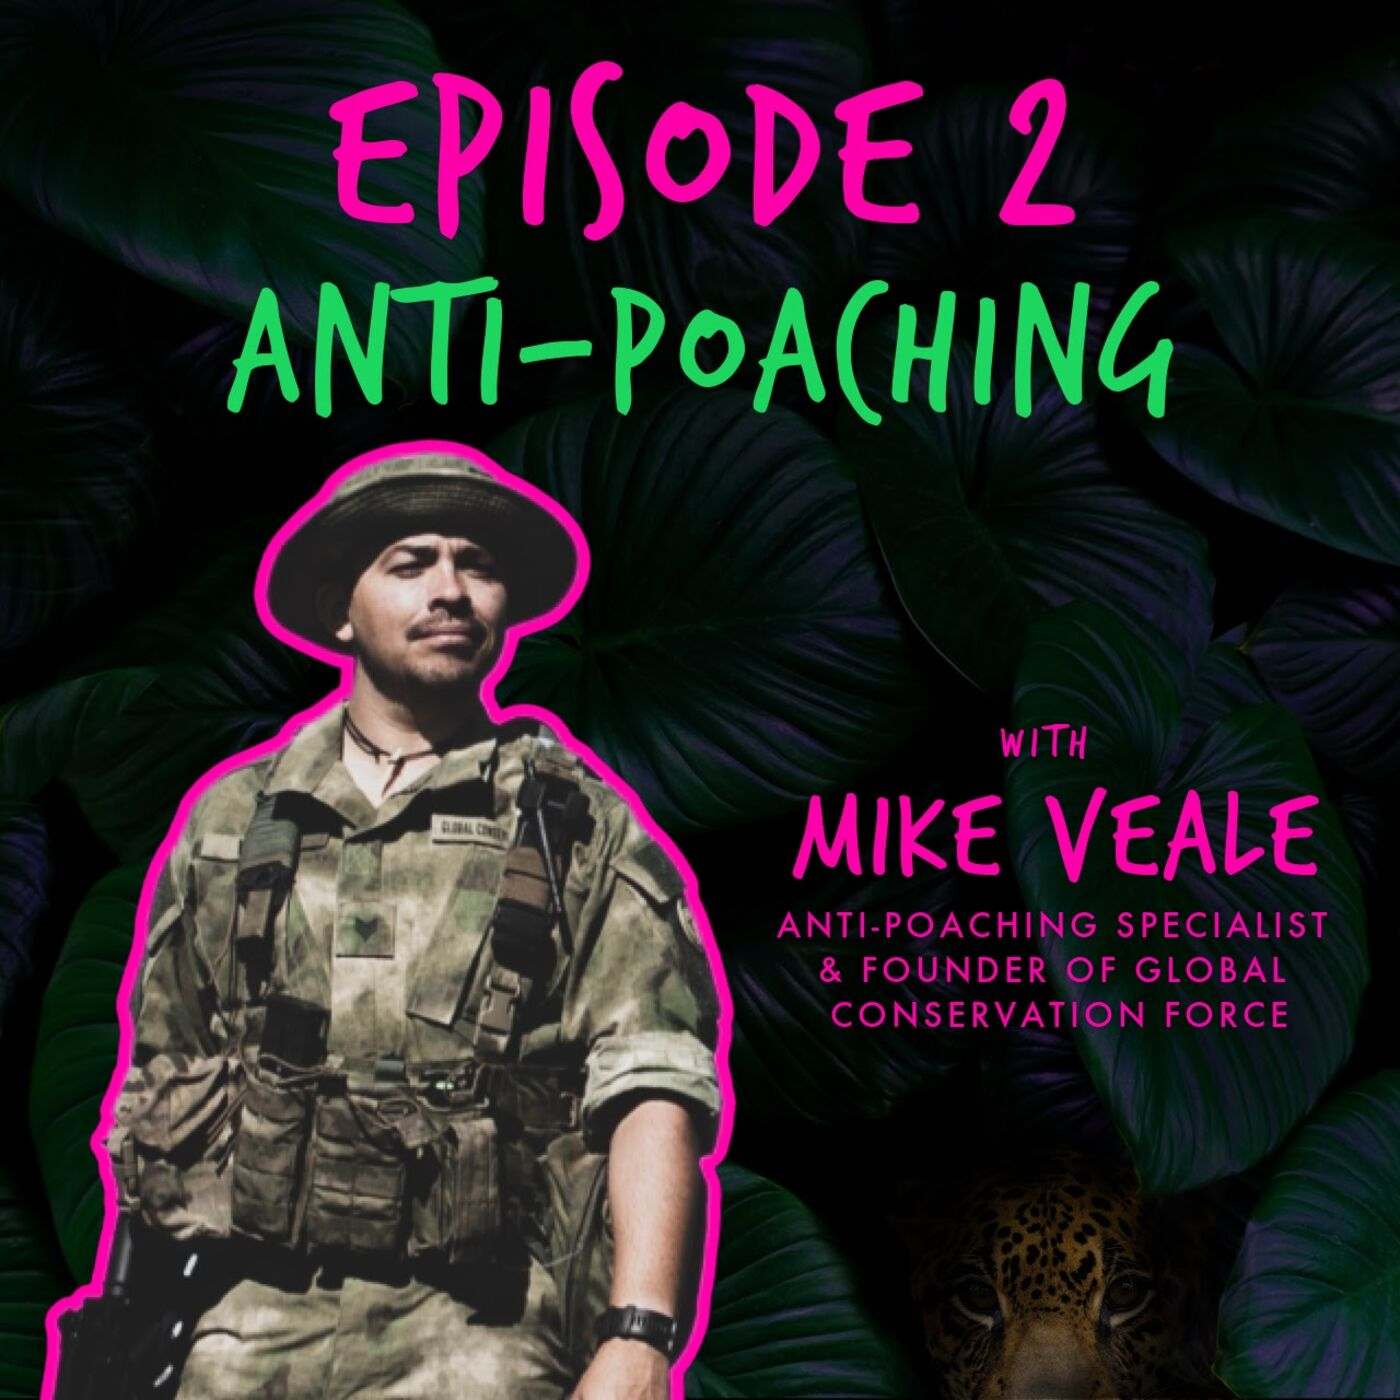 ANTI-POACHING with MIKE VEALE